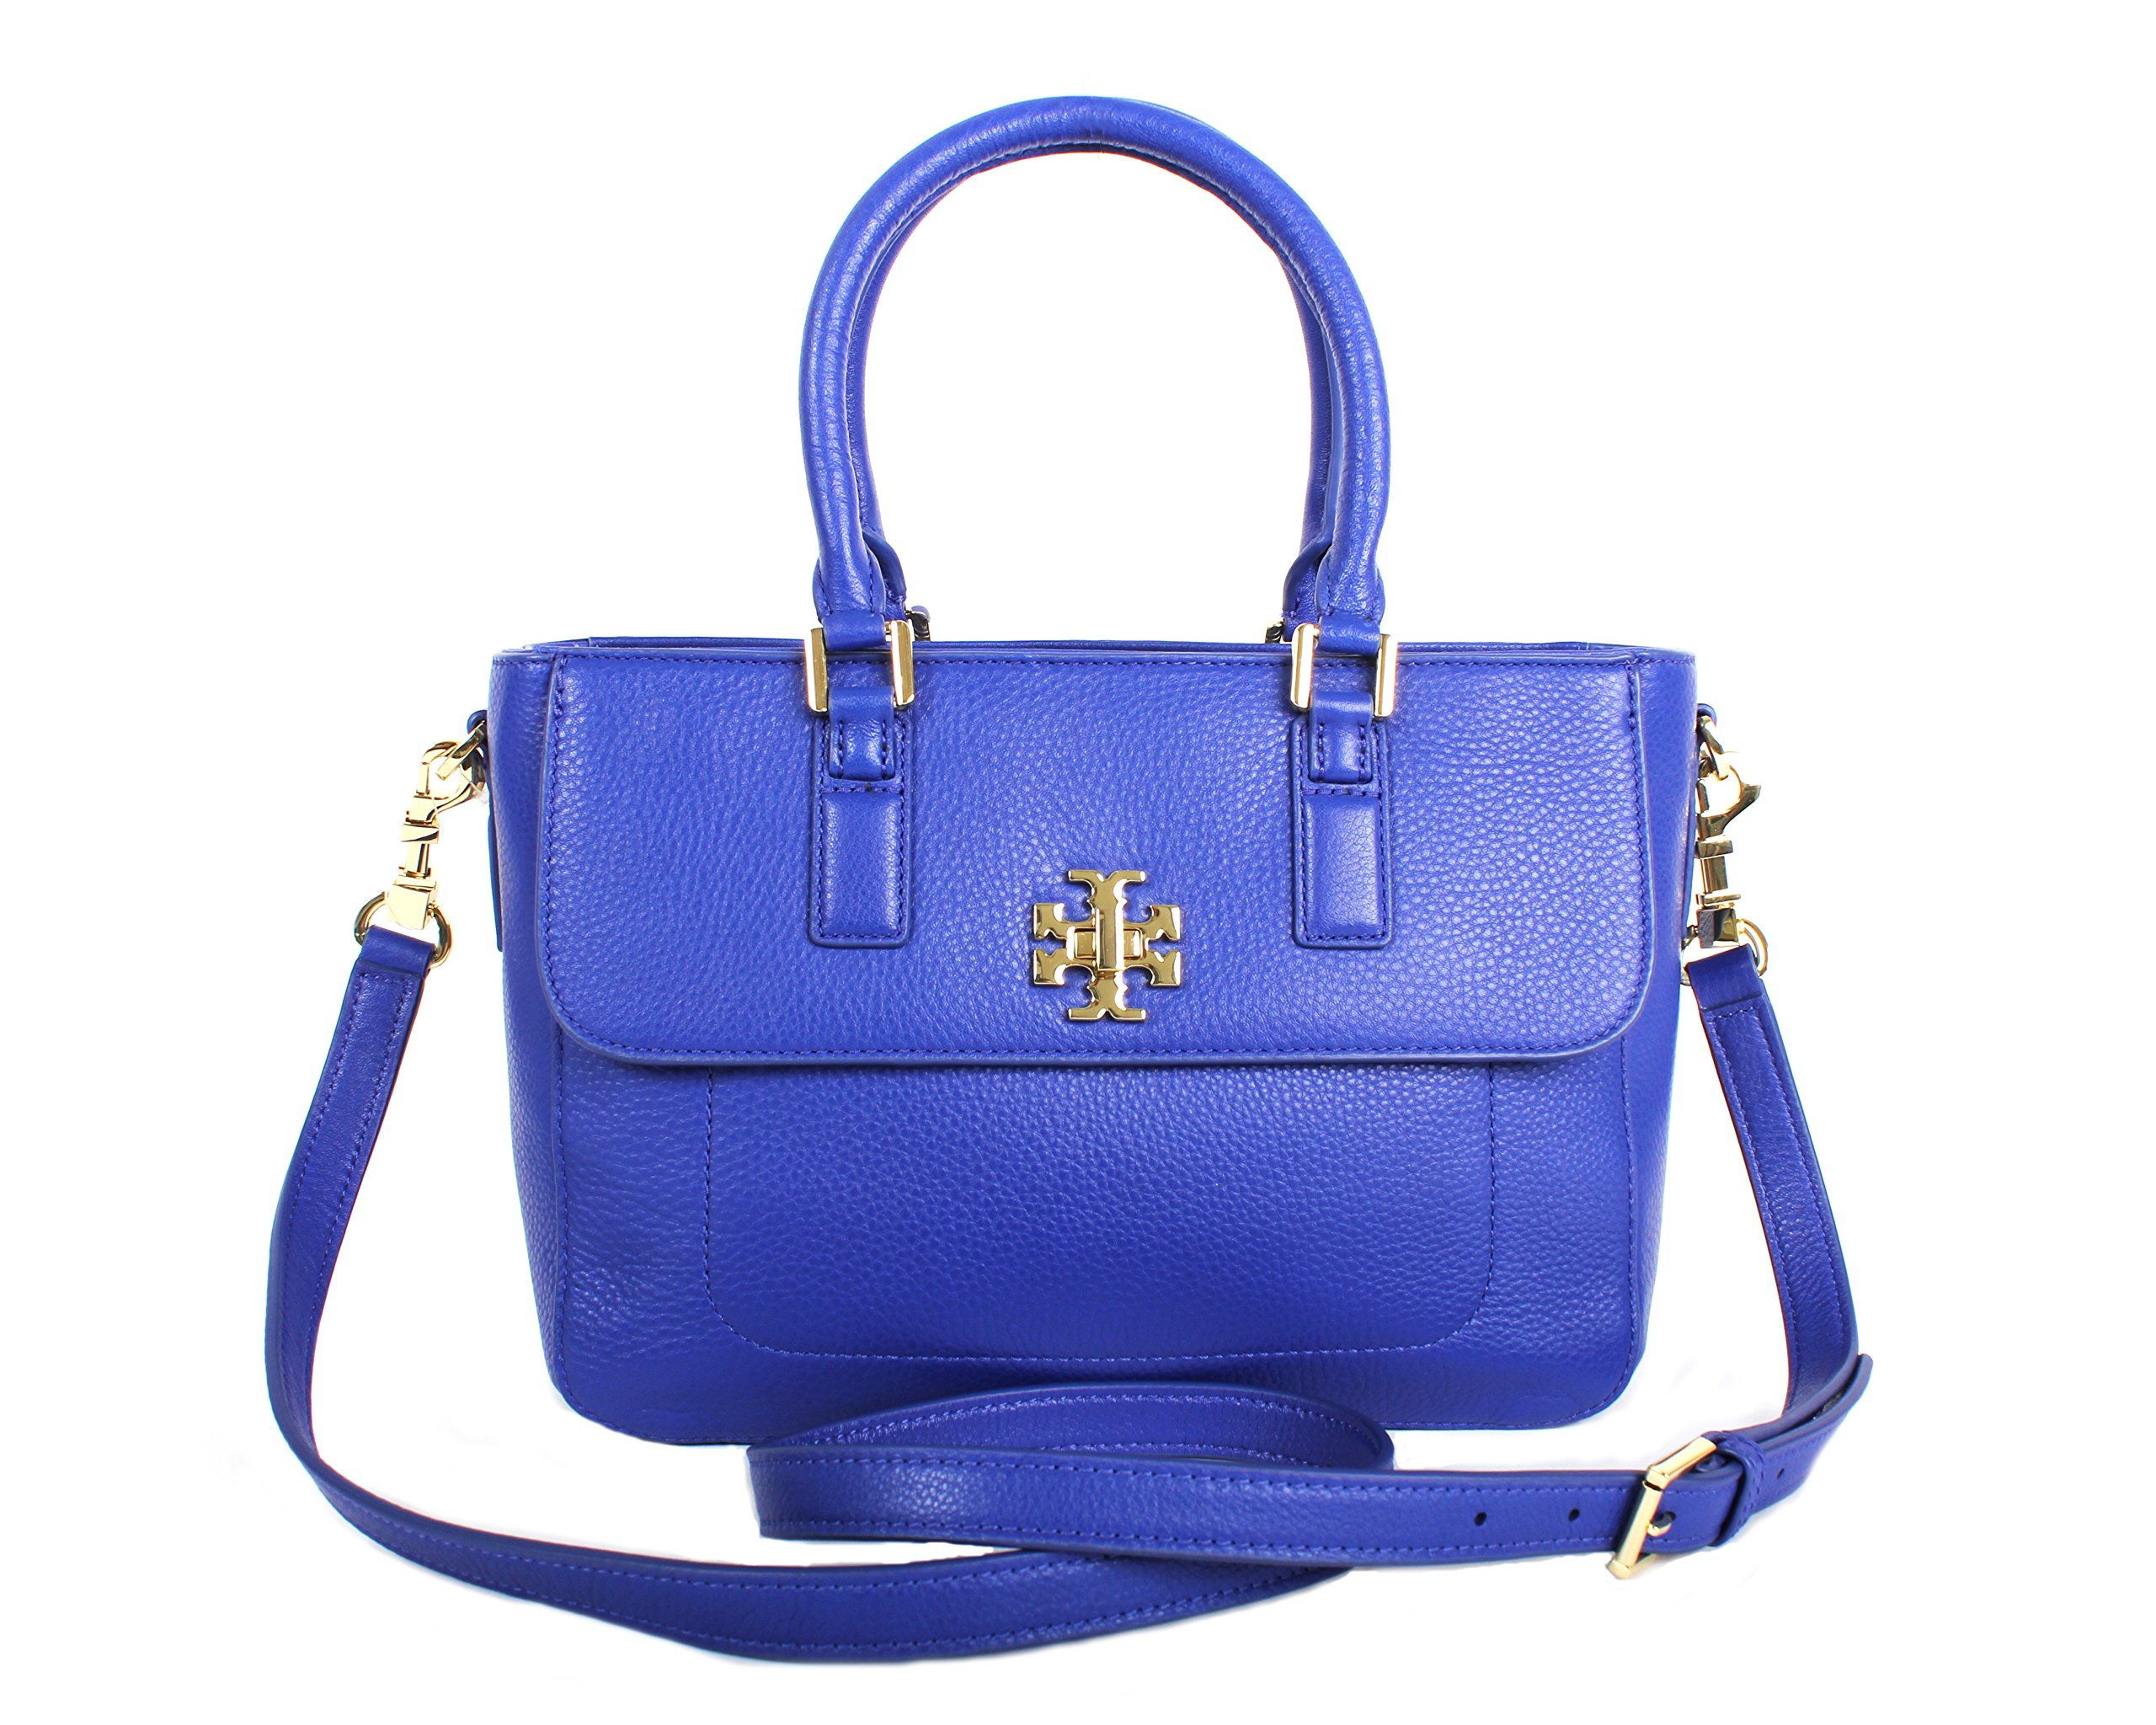 Tory Burch Mercer Mini Satchel in Pebbled Leather, Style No. 31384 (Macaw)